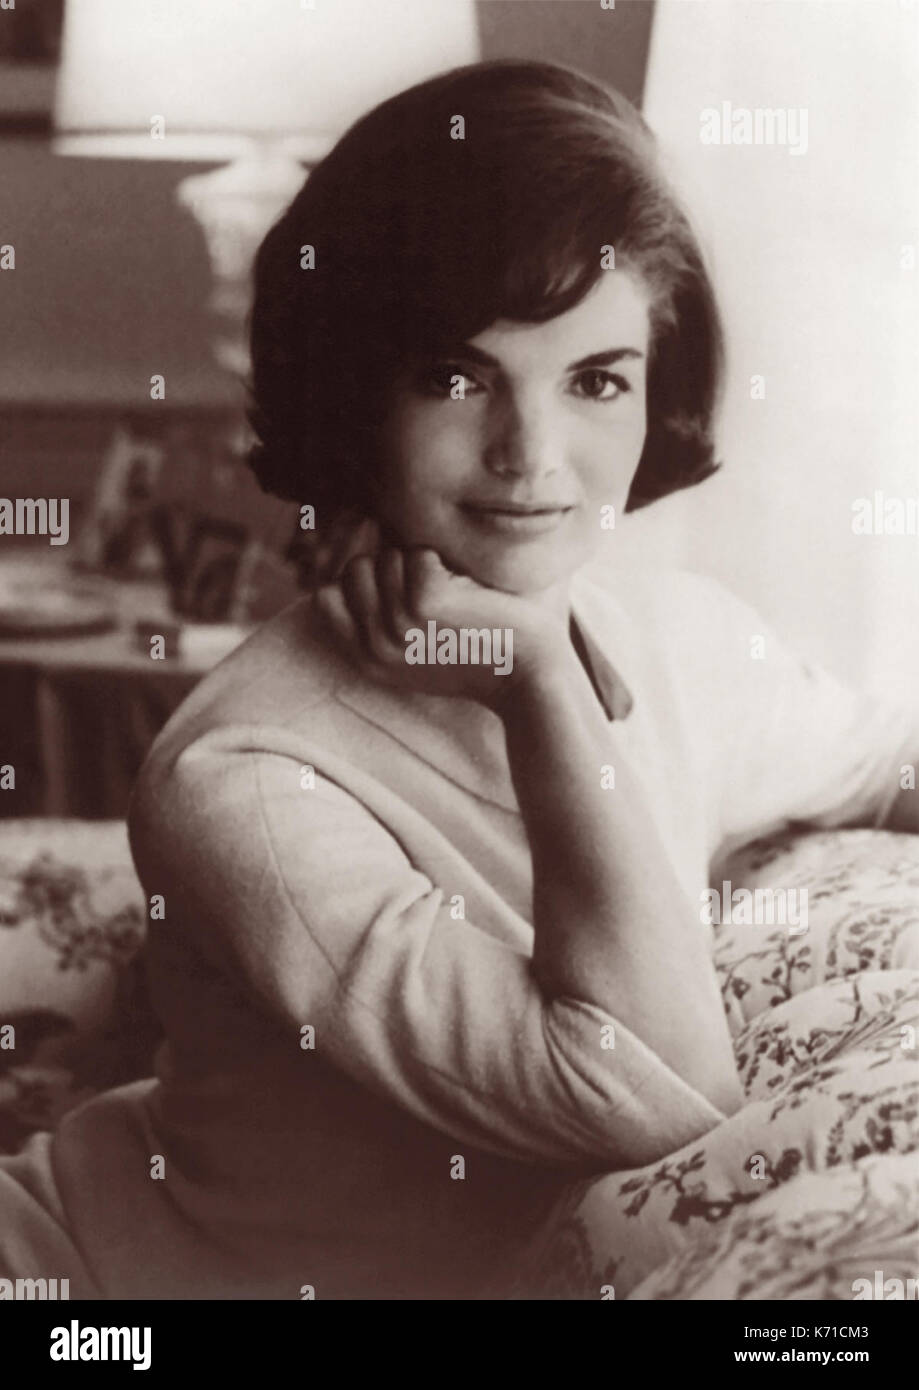 First Lady Jacqueline Bouvier Kennedy, wife of President John F. Kennedy, in a 1961 White House portrait by Mark Shaw. - Stock Image